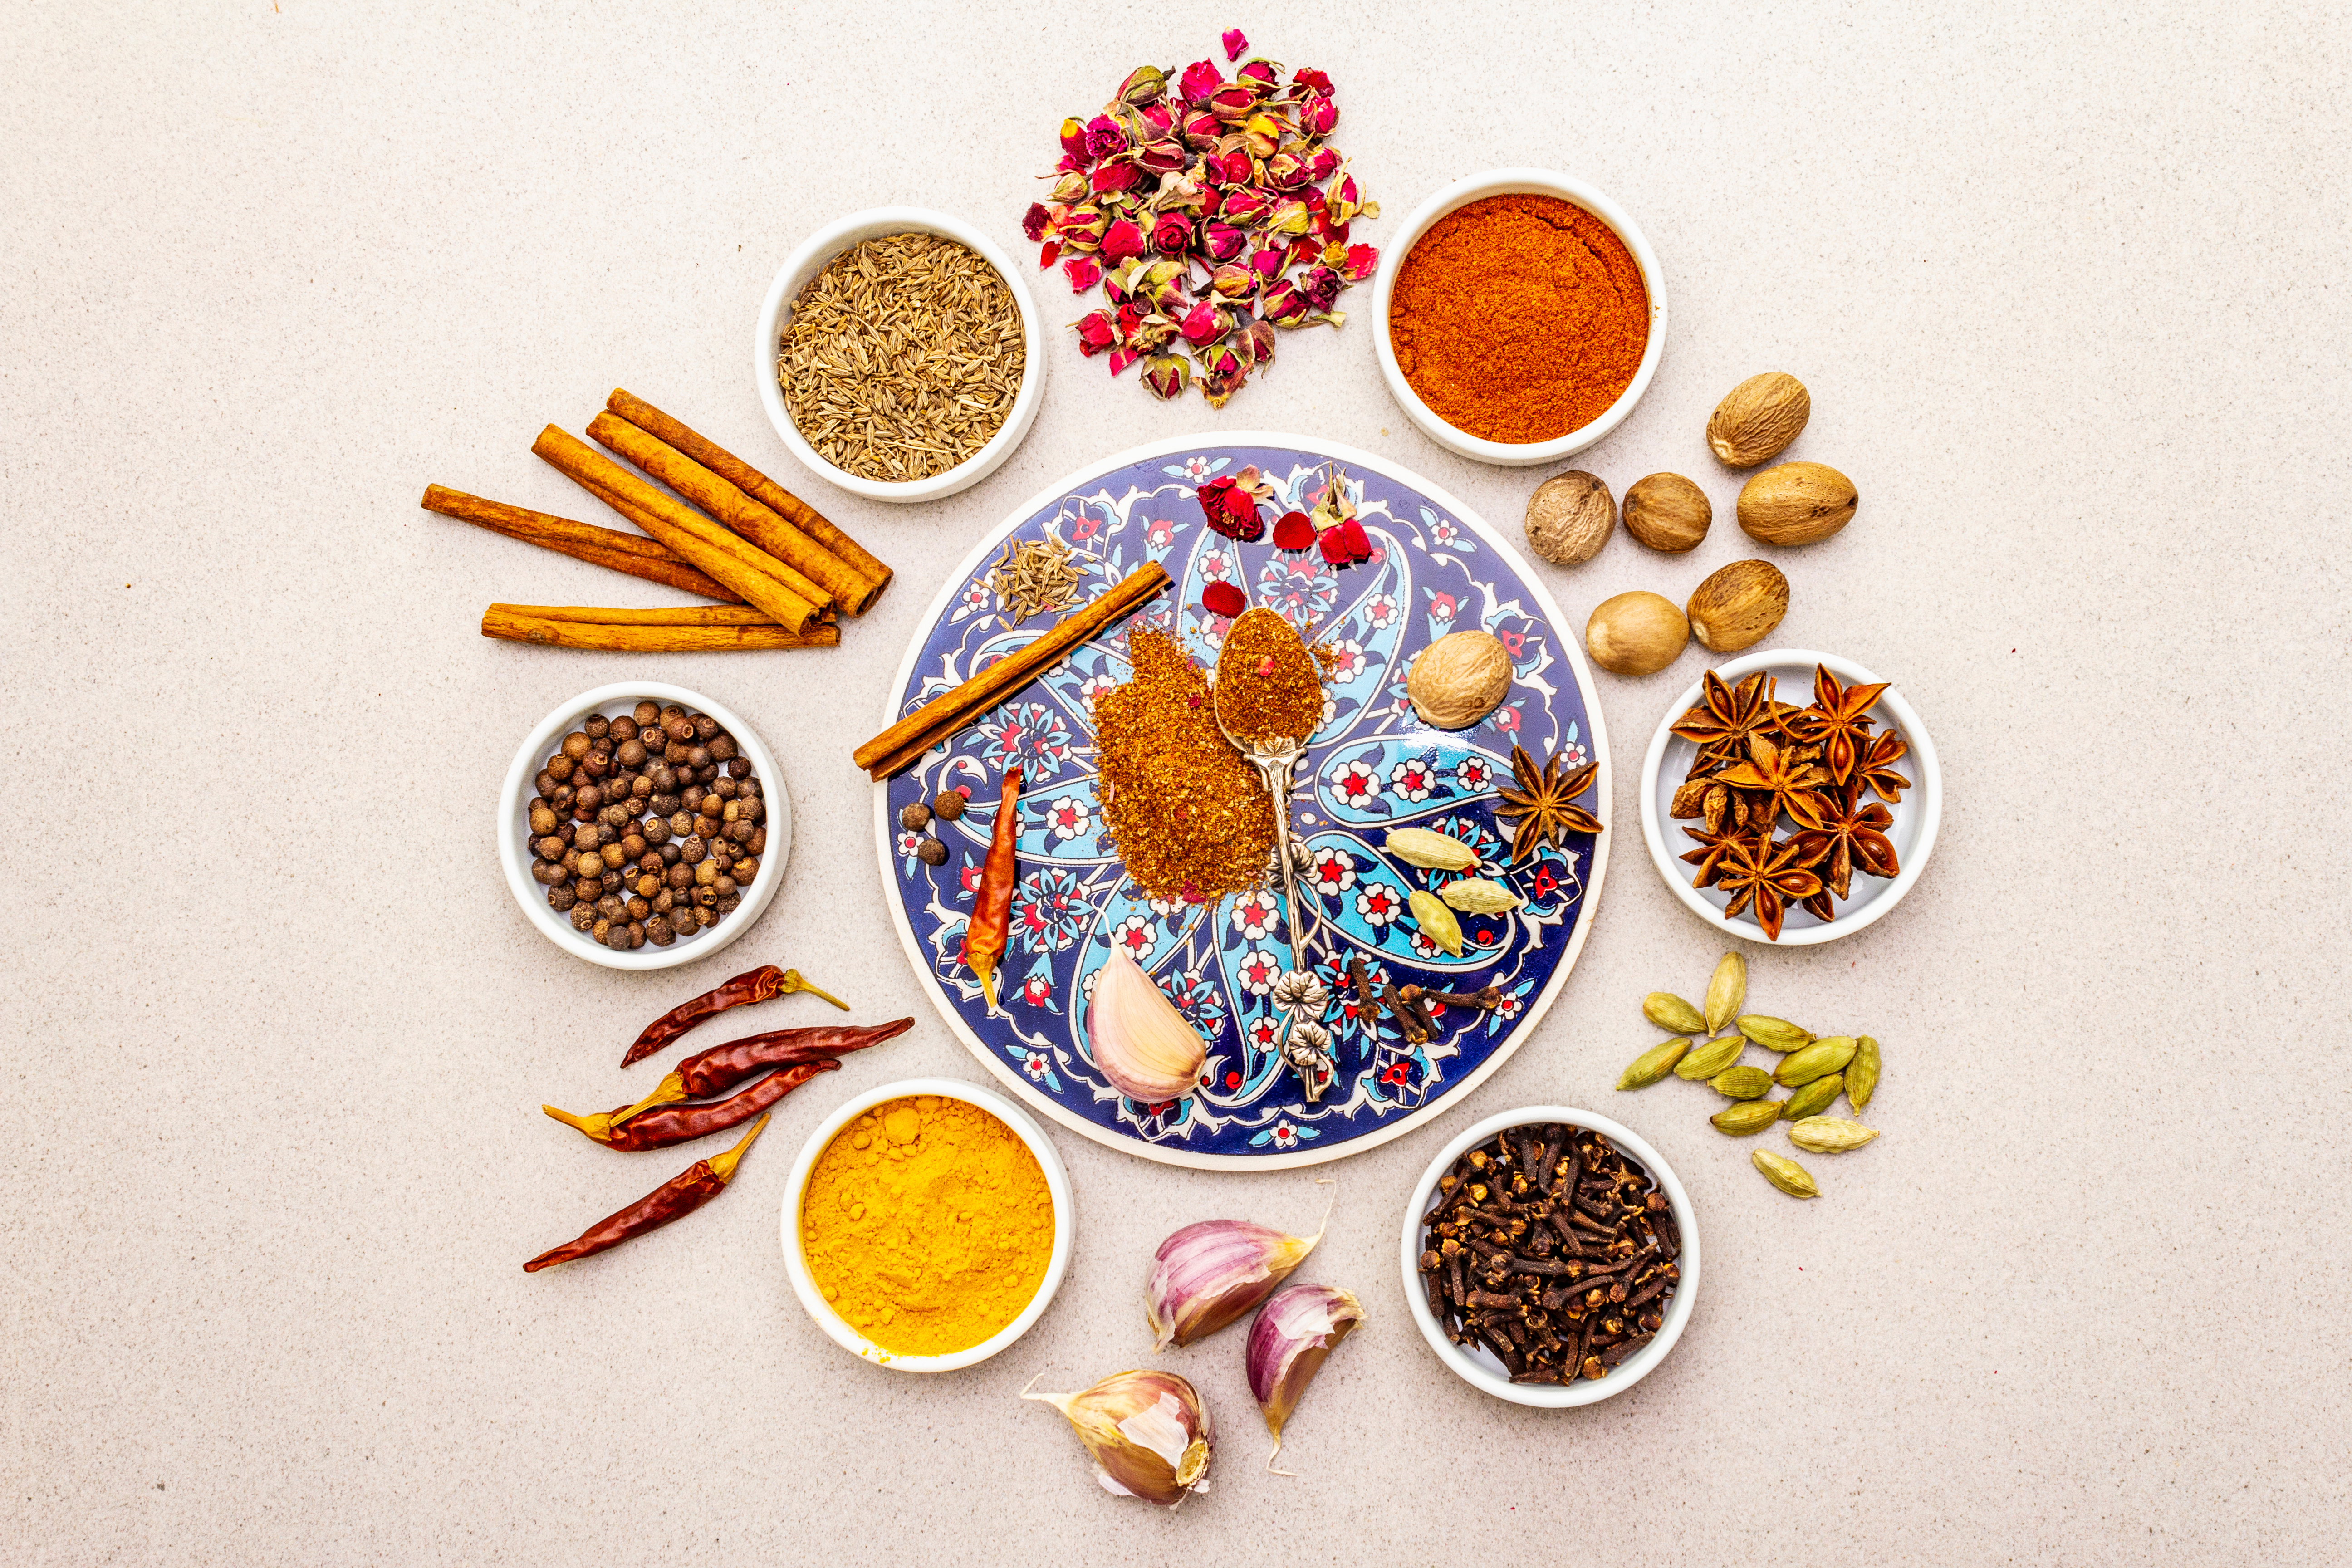 HOW TO MAKE RAS EL HANOUT SPICE AT HOME